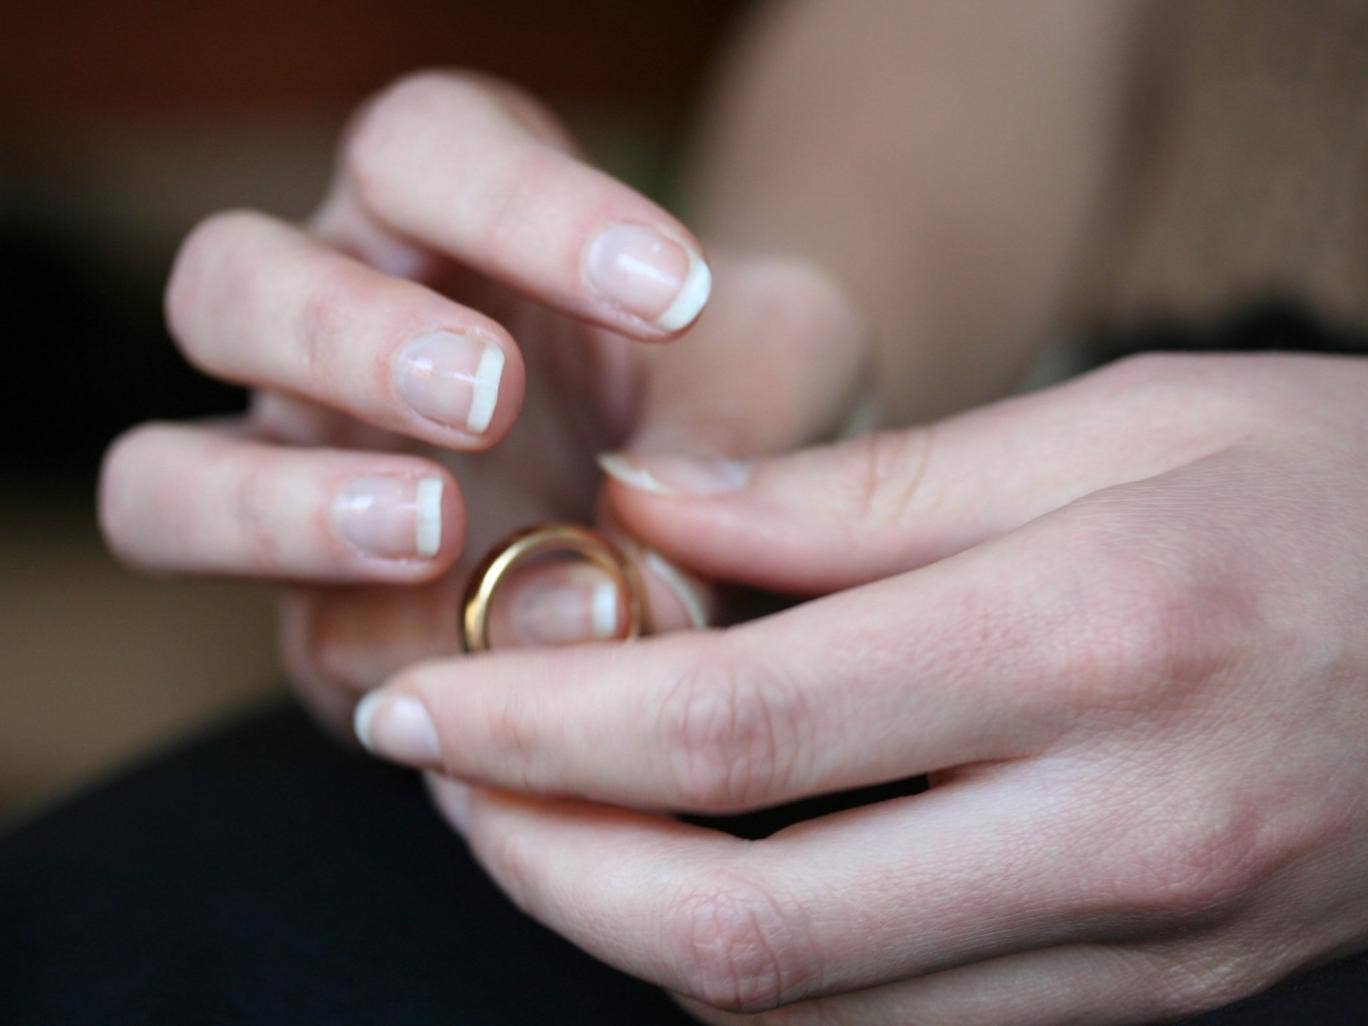 Two out of five marriages end in divorce but filling in the paperwork wrong can prove very costly